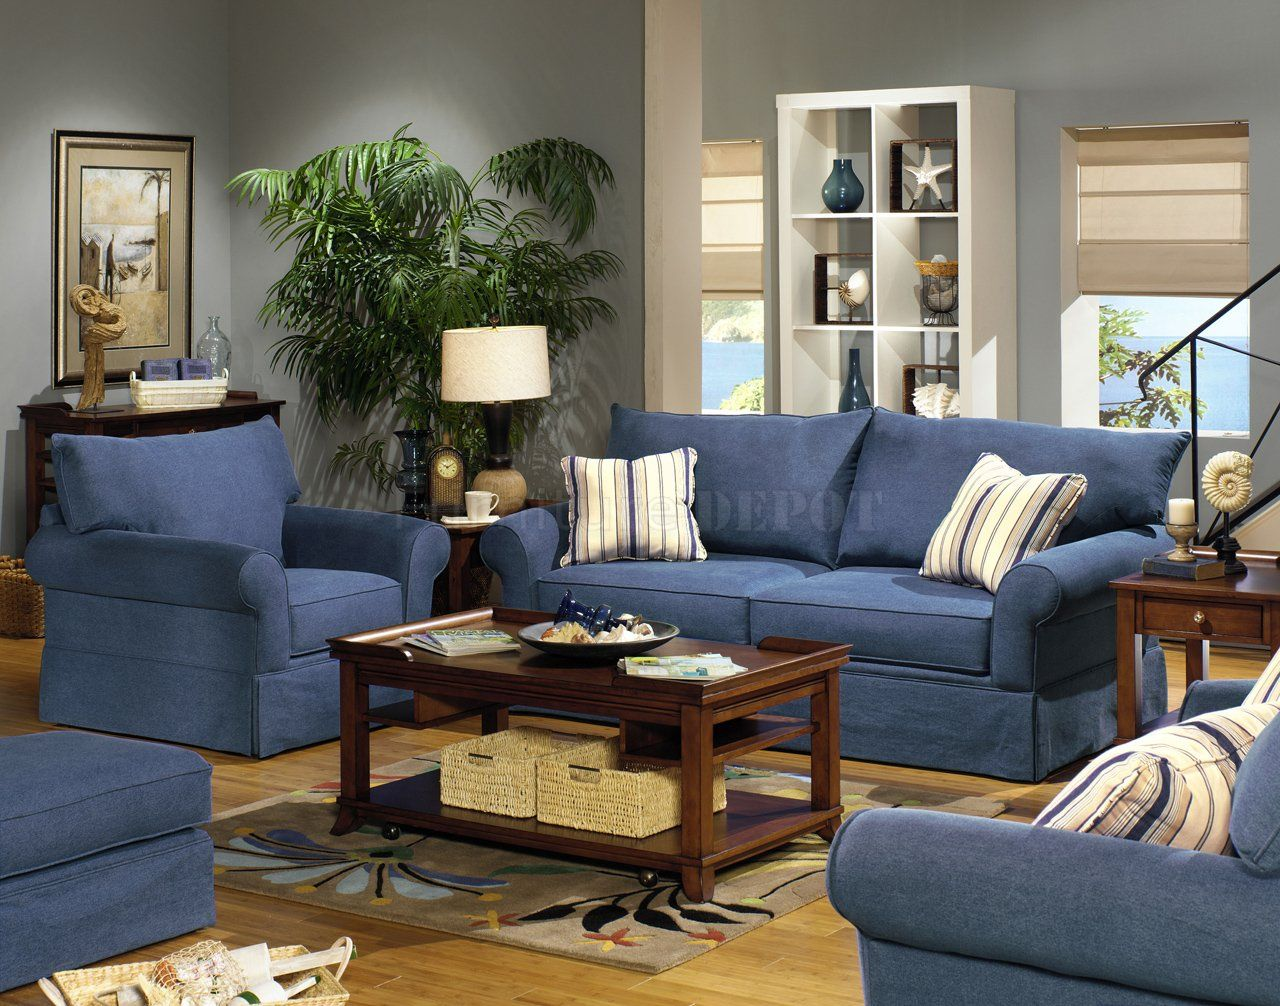 Denim Blue Sofas For Uniquely Timeless Look In Your Living Space Blue Couch Living Room Blue Couch Living Living Room Sets Furniture